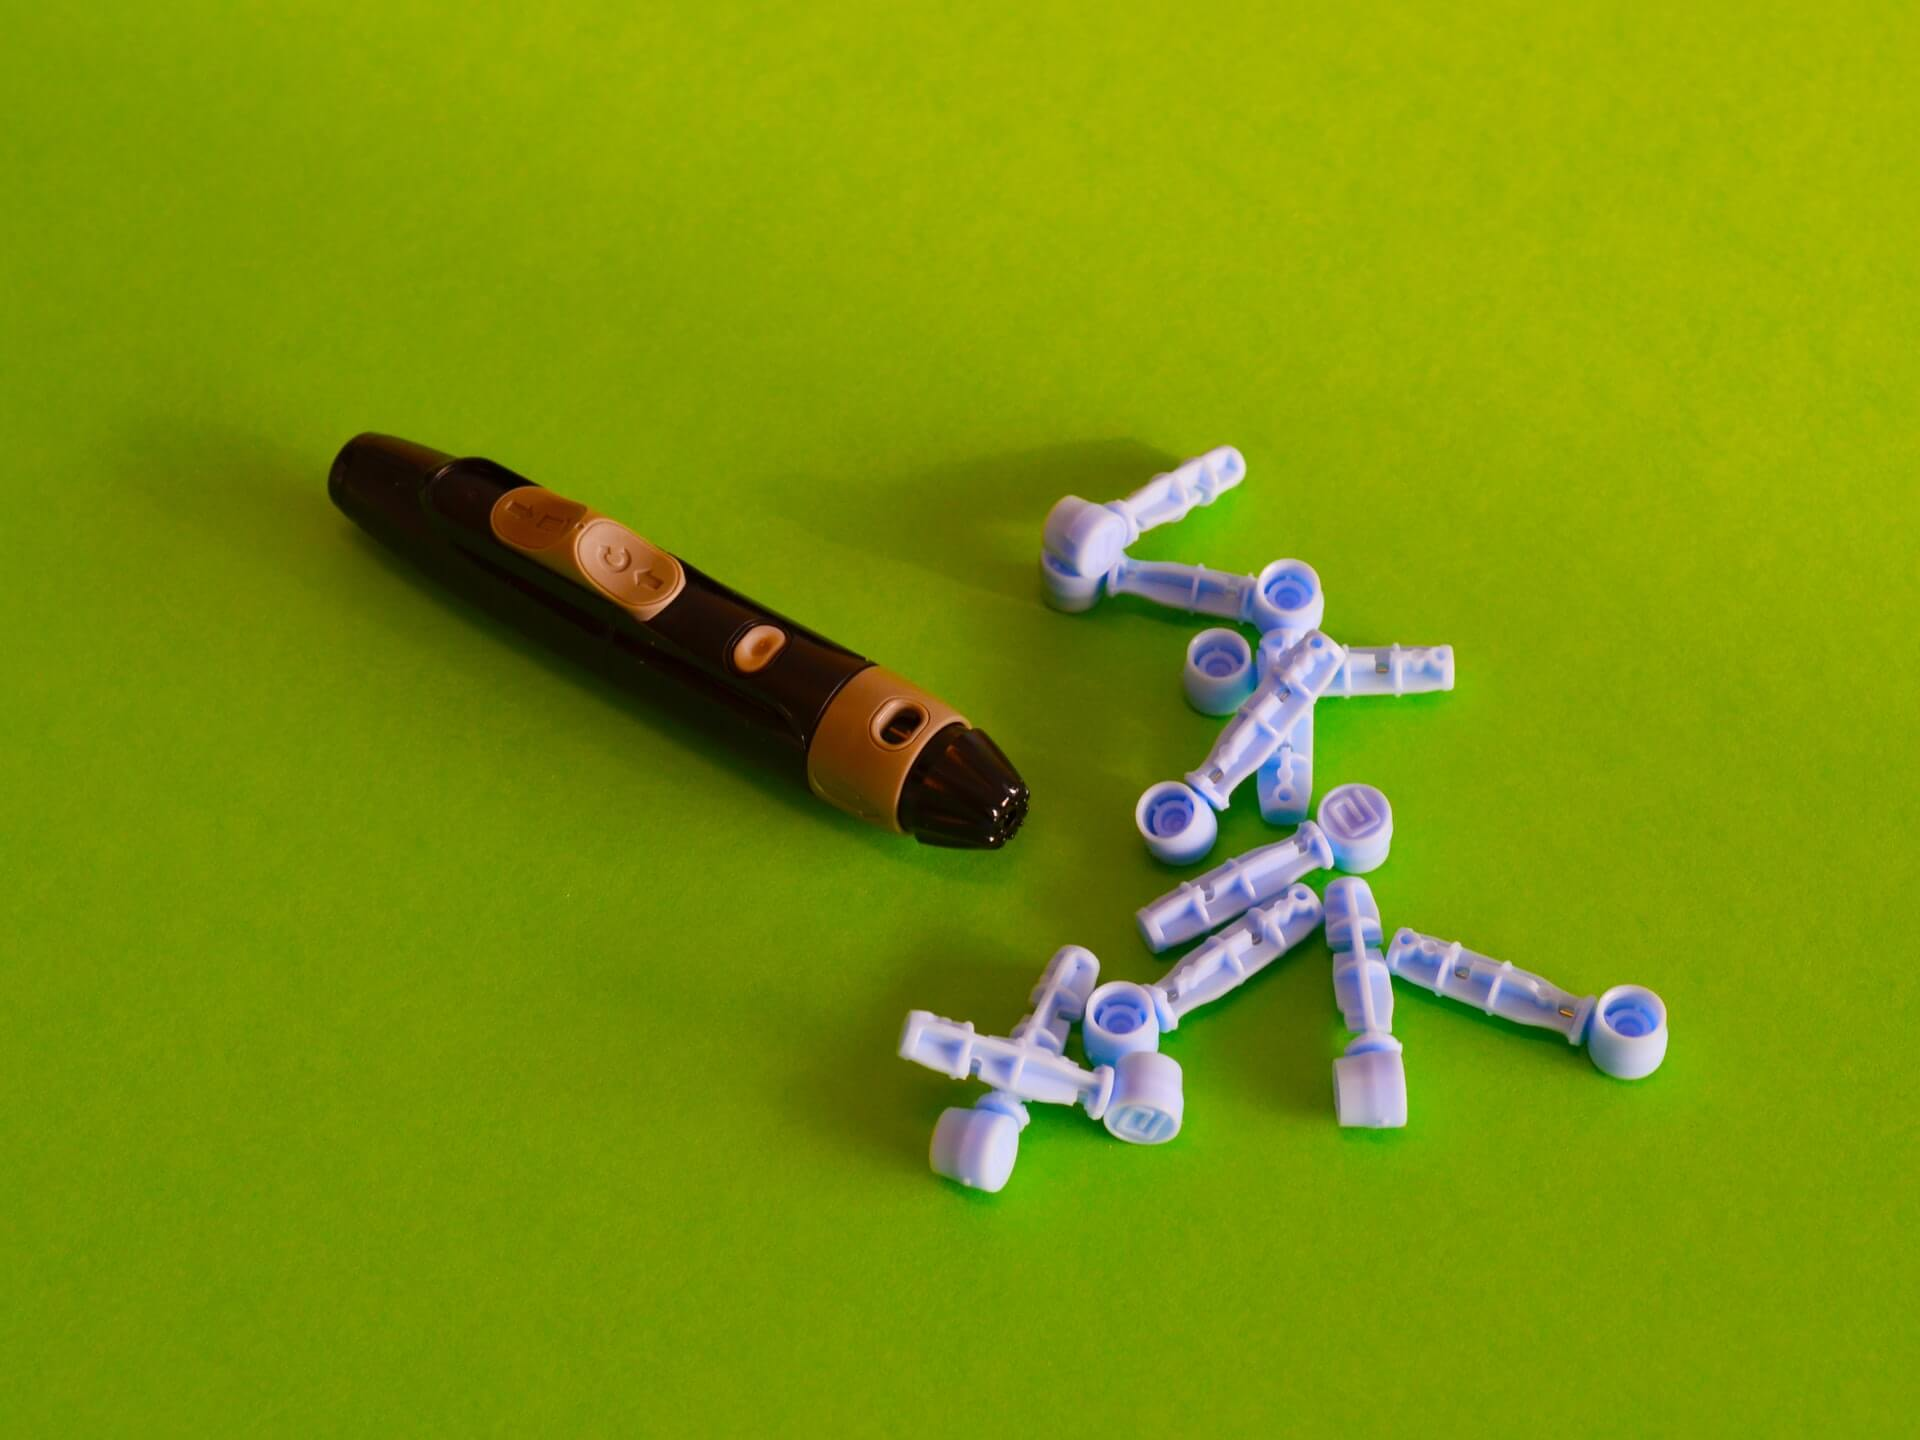 Tools used to obtain blood sample for glucose test